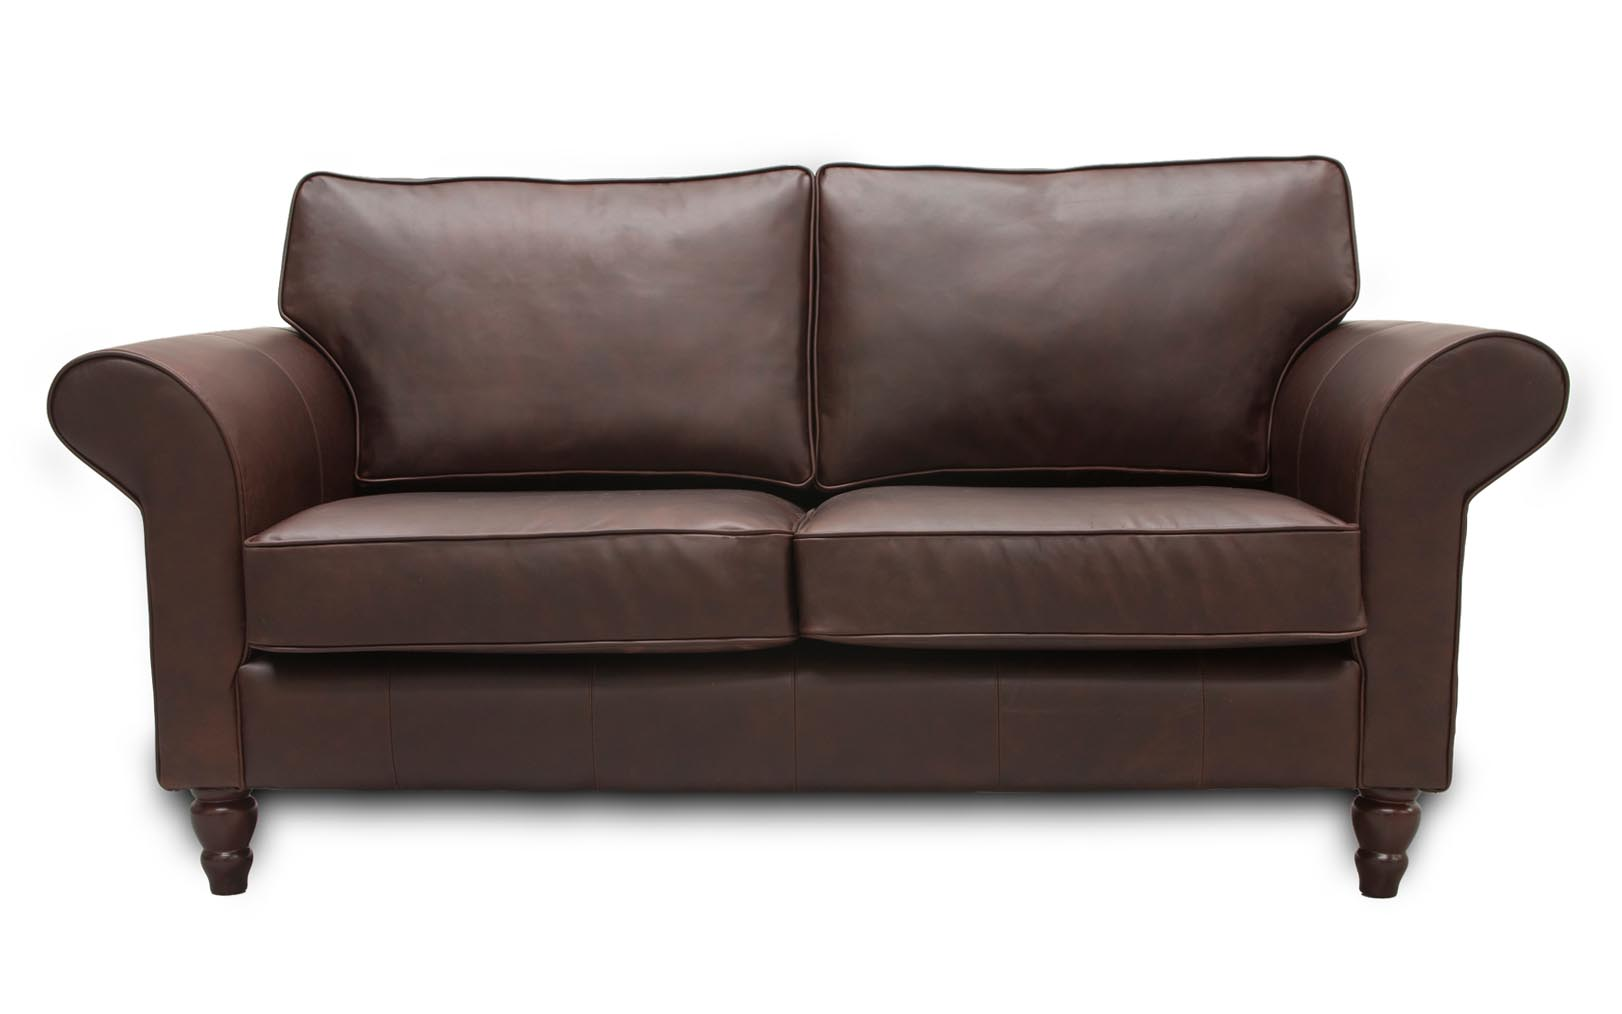 classic leather sofa by the leather sofa shop choice of. Black Bedroom Furniture Sets. Home Design Ideas